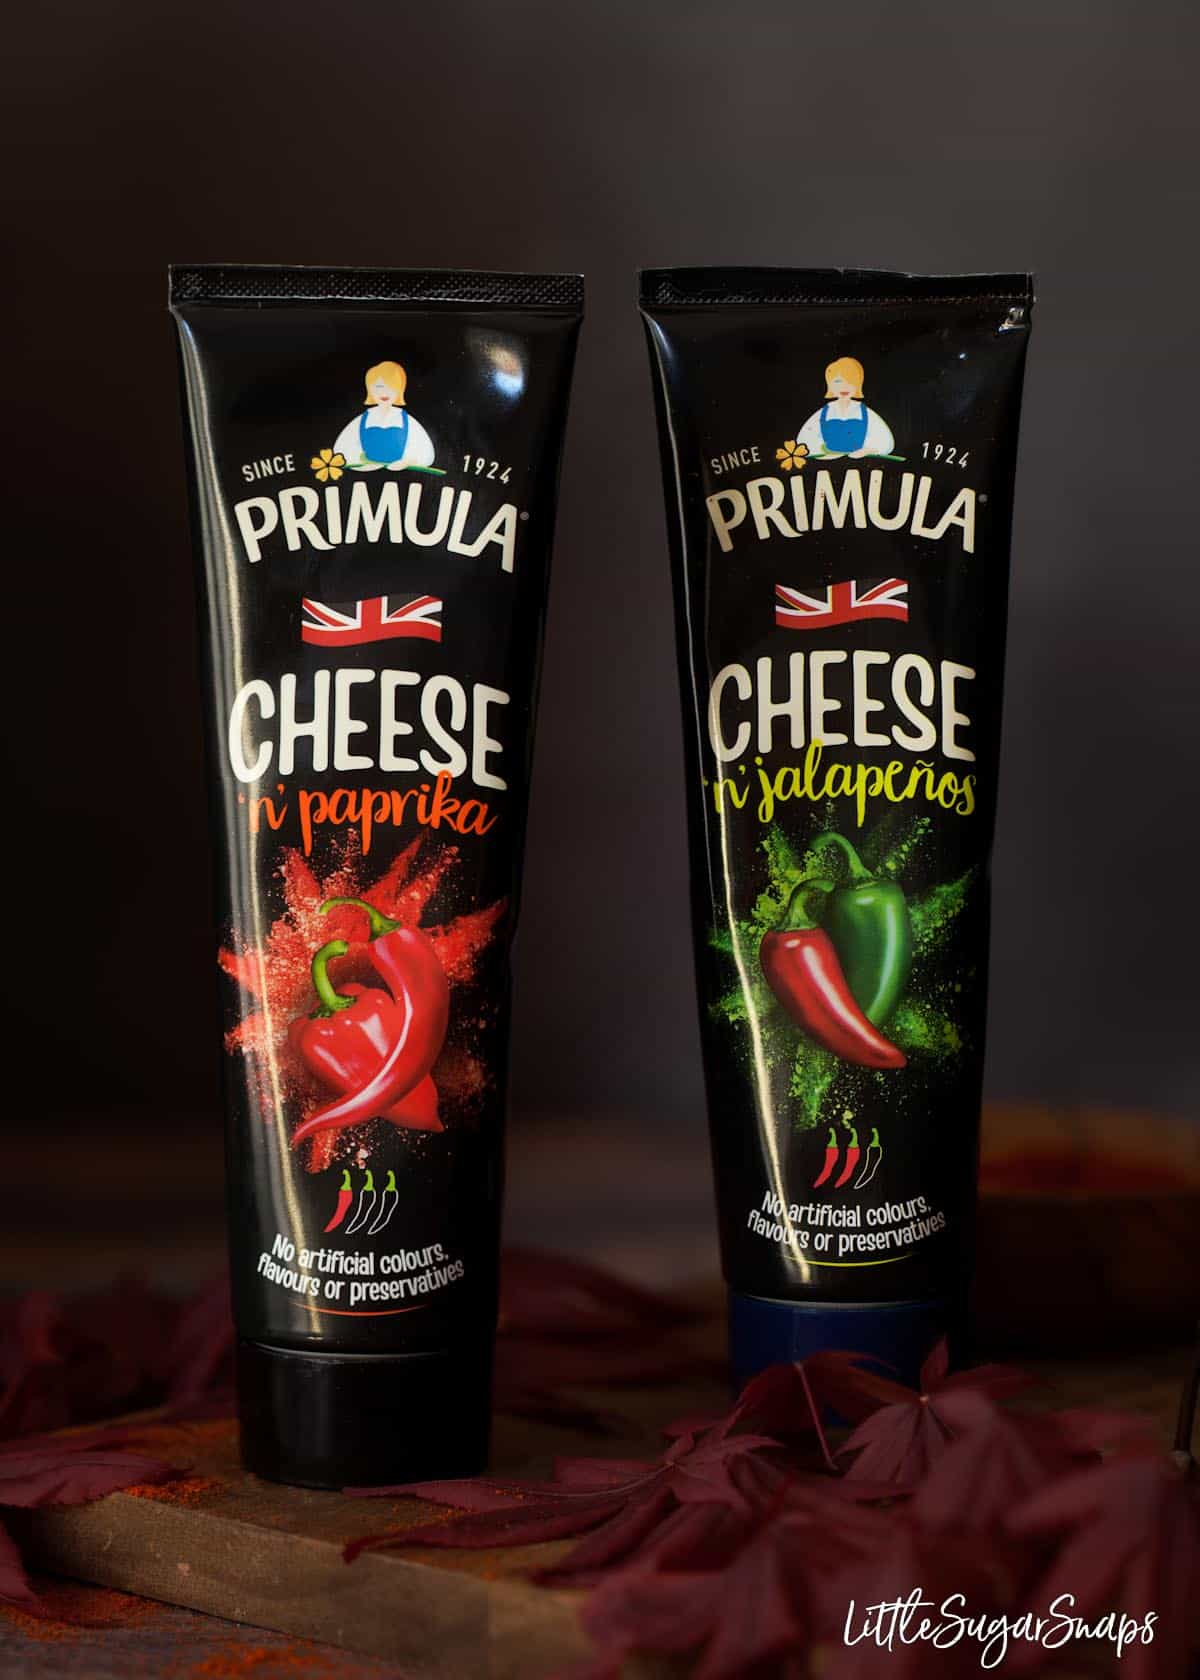 Two tubes of Primula cheese spread - one flavoured with paprika, the other with jalapeno